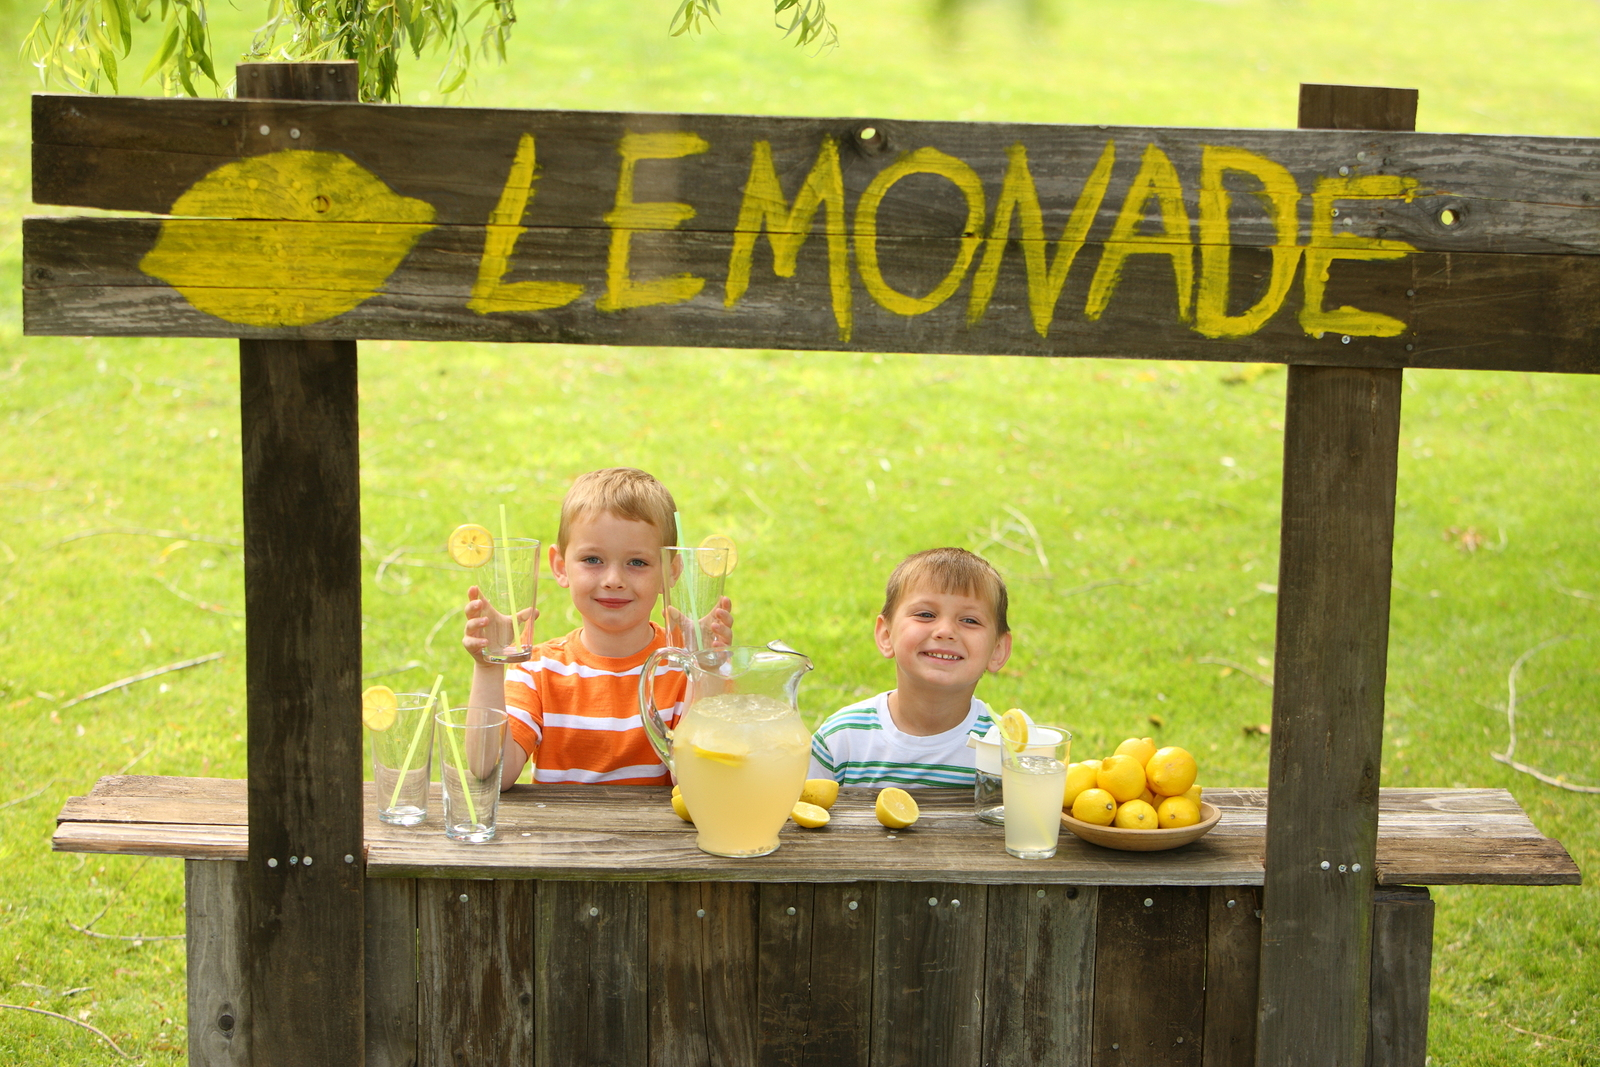 Here's how our writer encourages her son's entrepreneurial spirit.